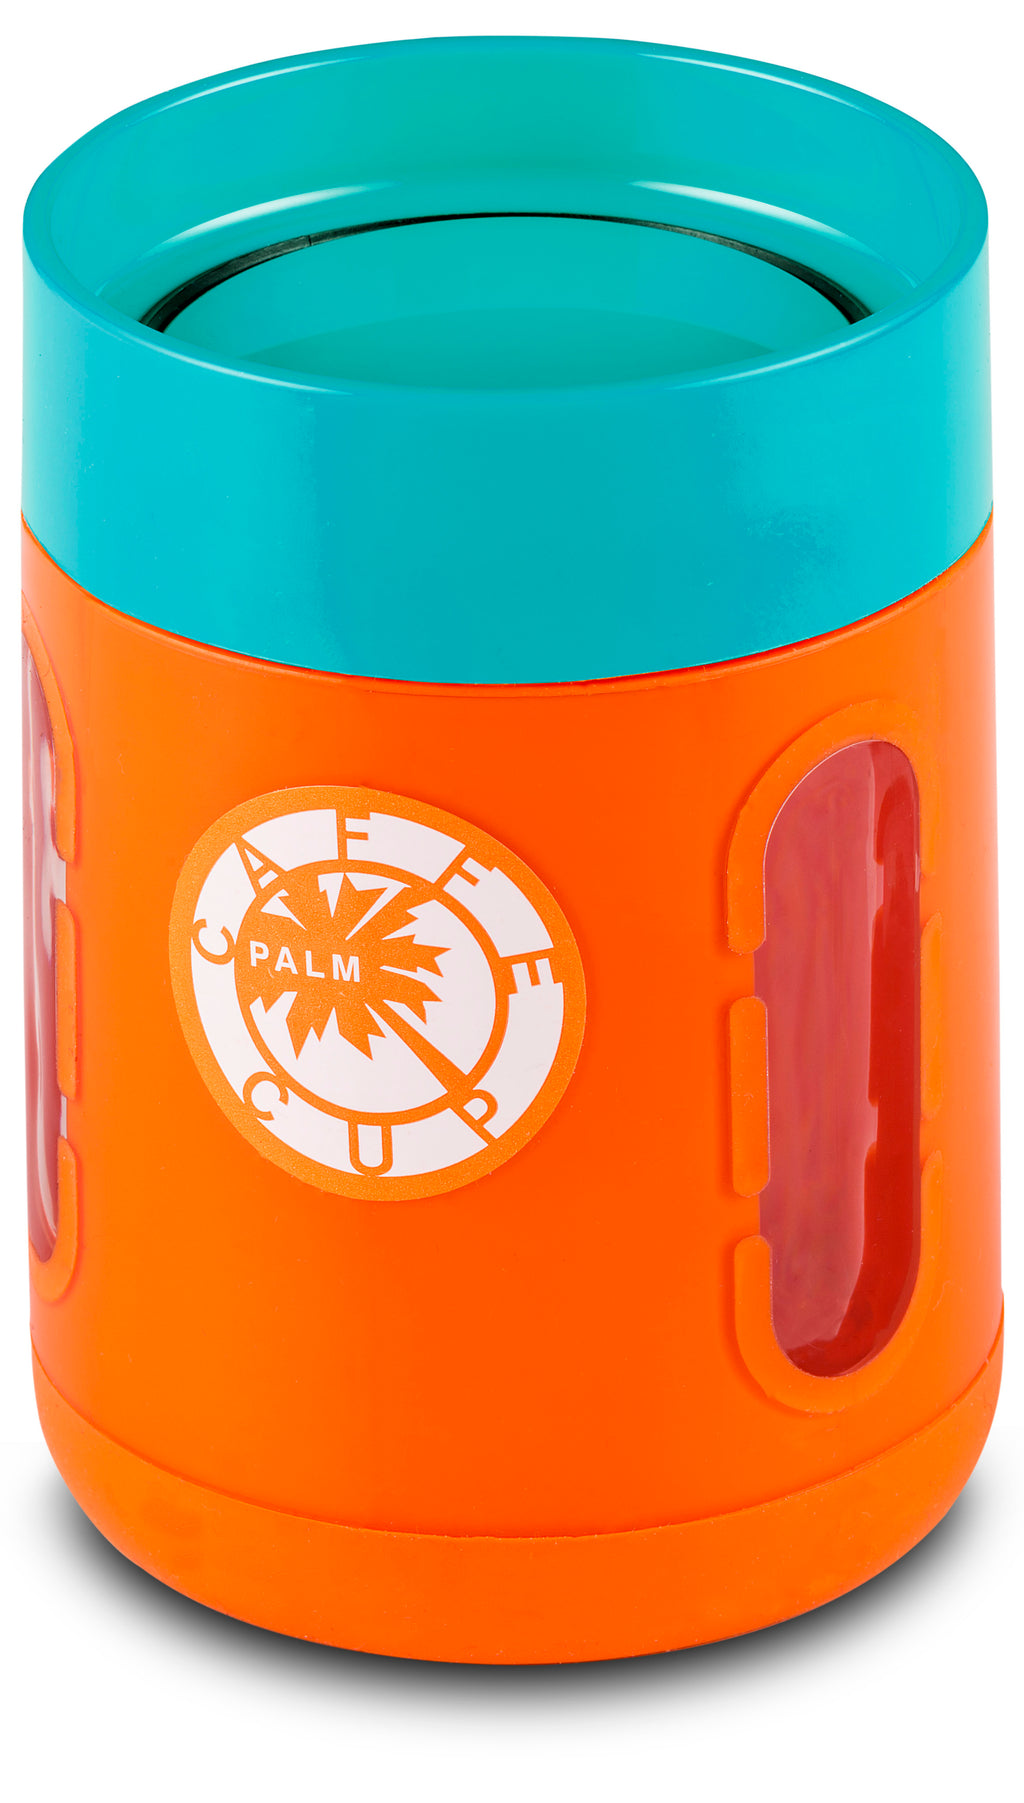 Palm Caffe Cup - Orange/Blue